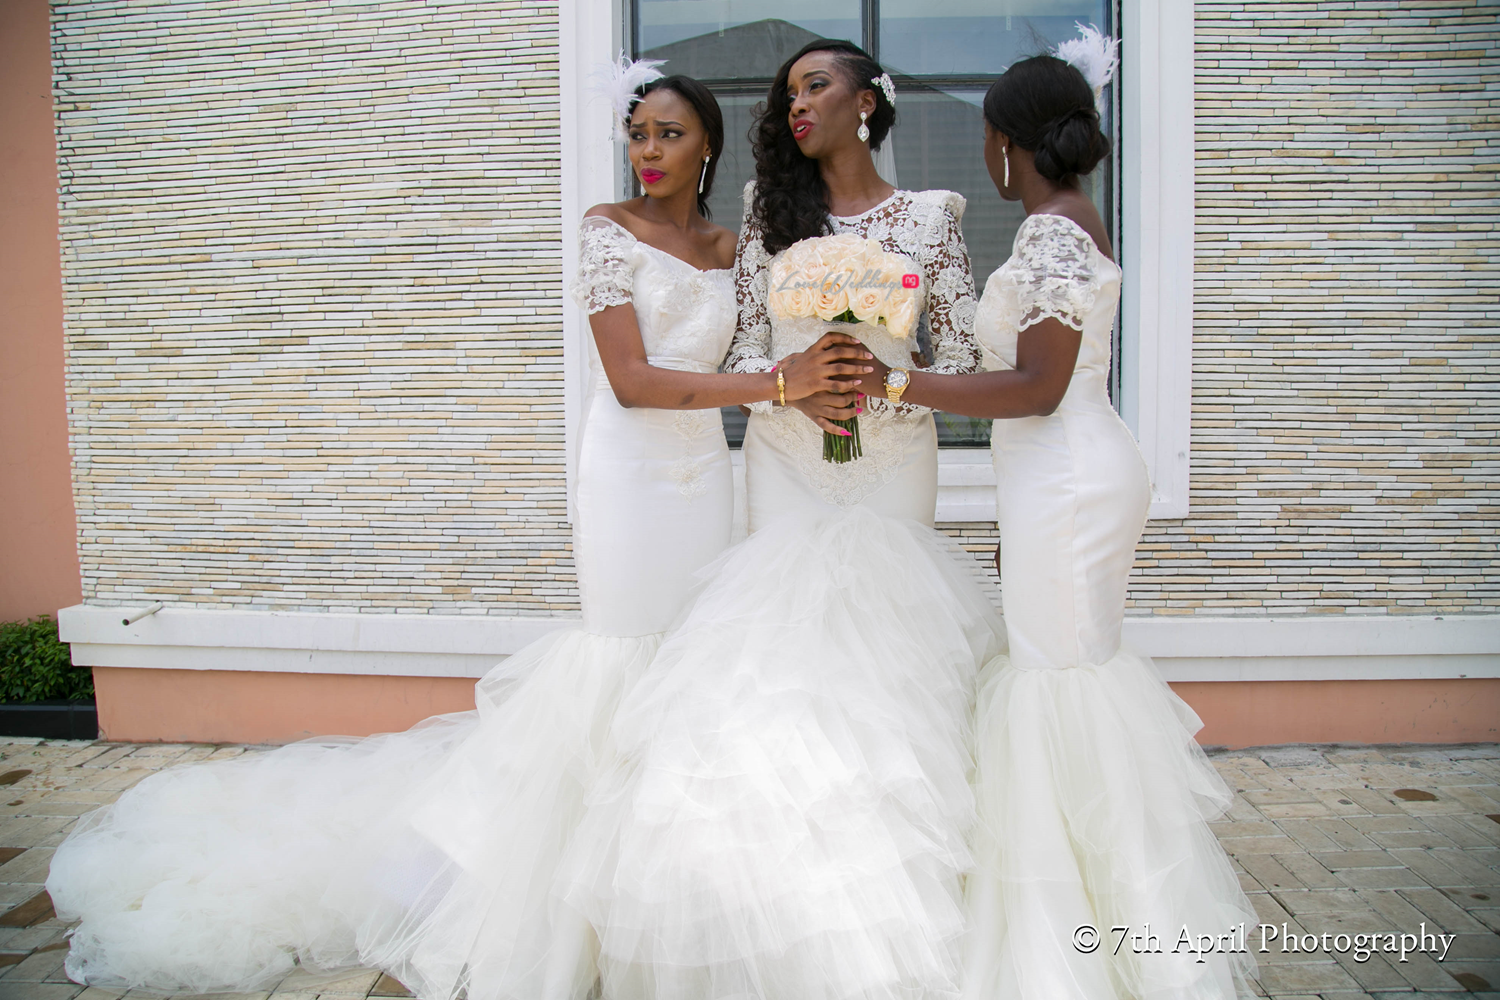 LoveweddingsNG Yvonne and Ivan 7th April Photography49